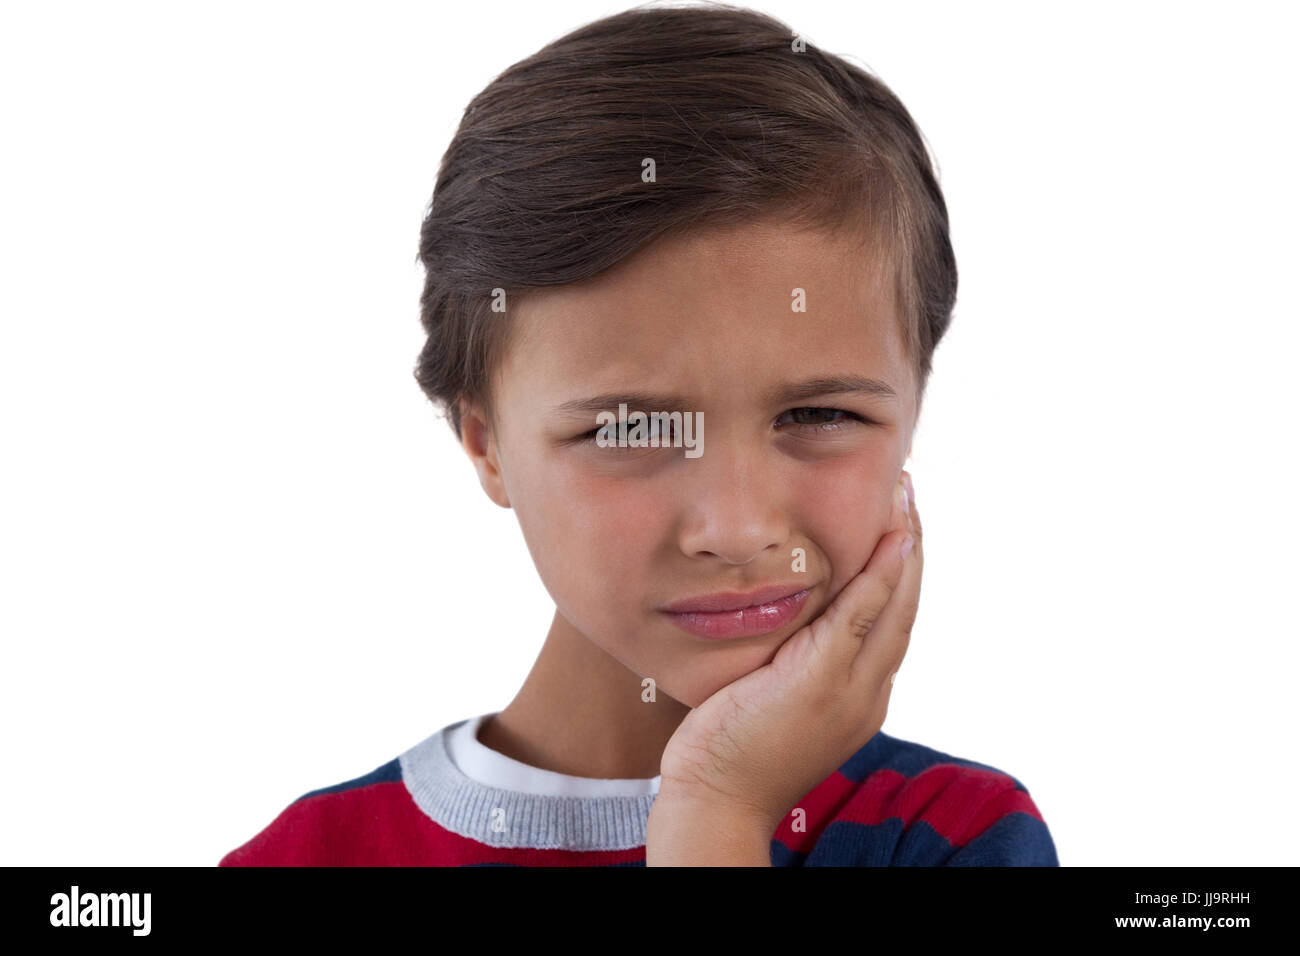 Close-up of cute boy having an toothache - Stock Image